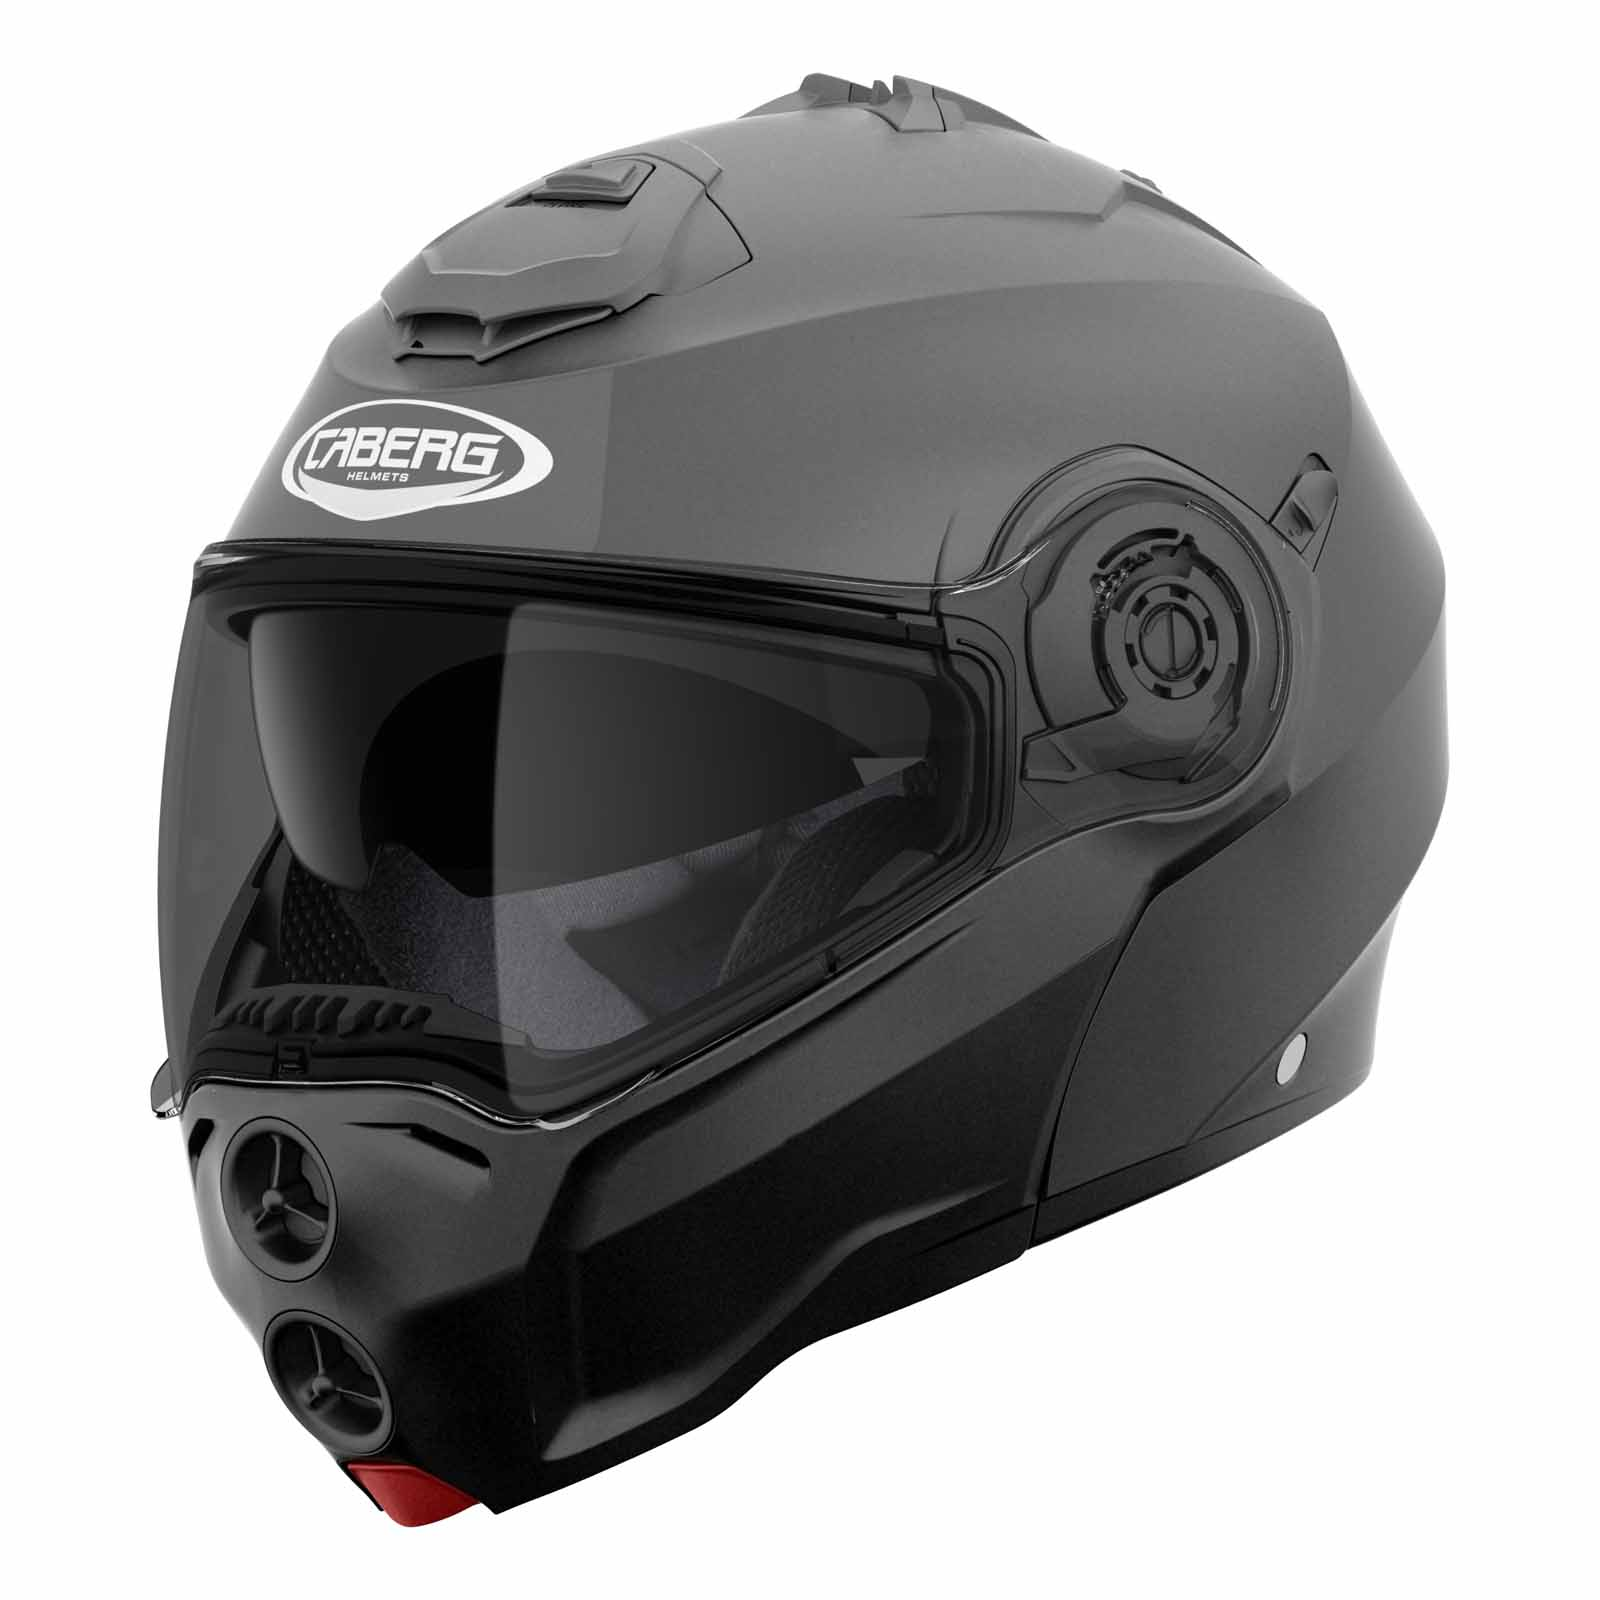 Caberg Droid Systeem Helm - Antraciet